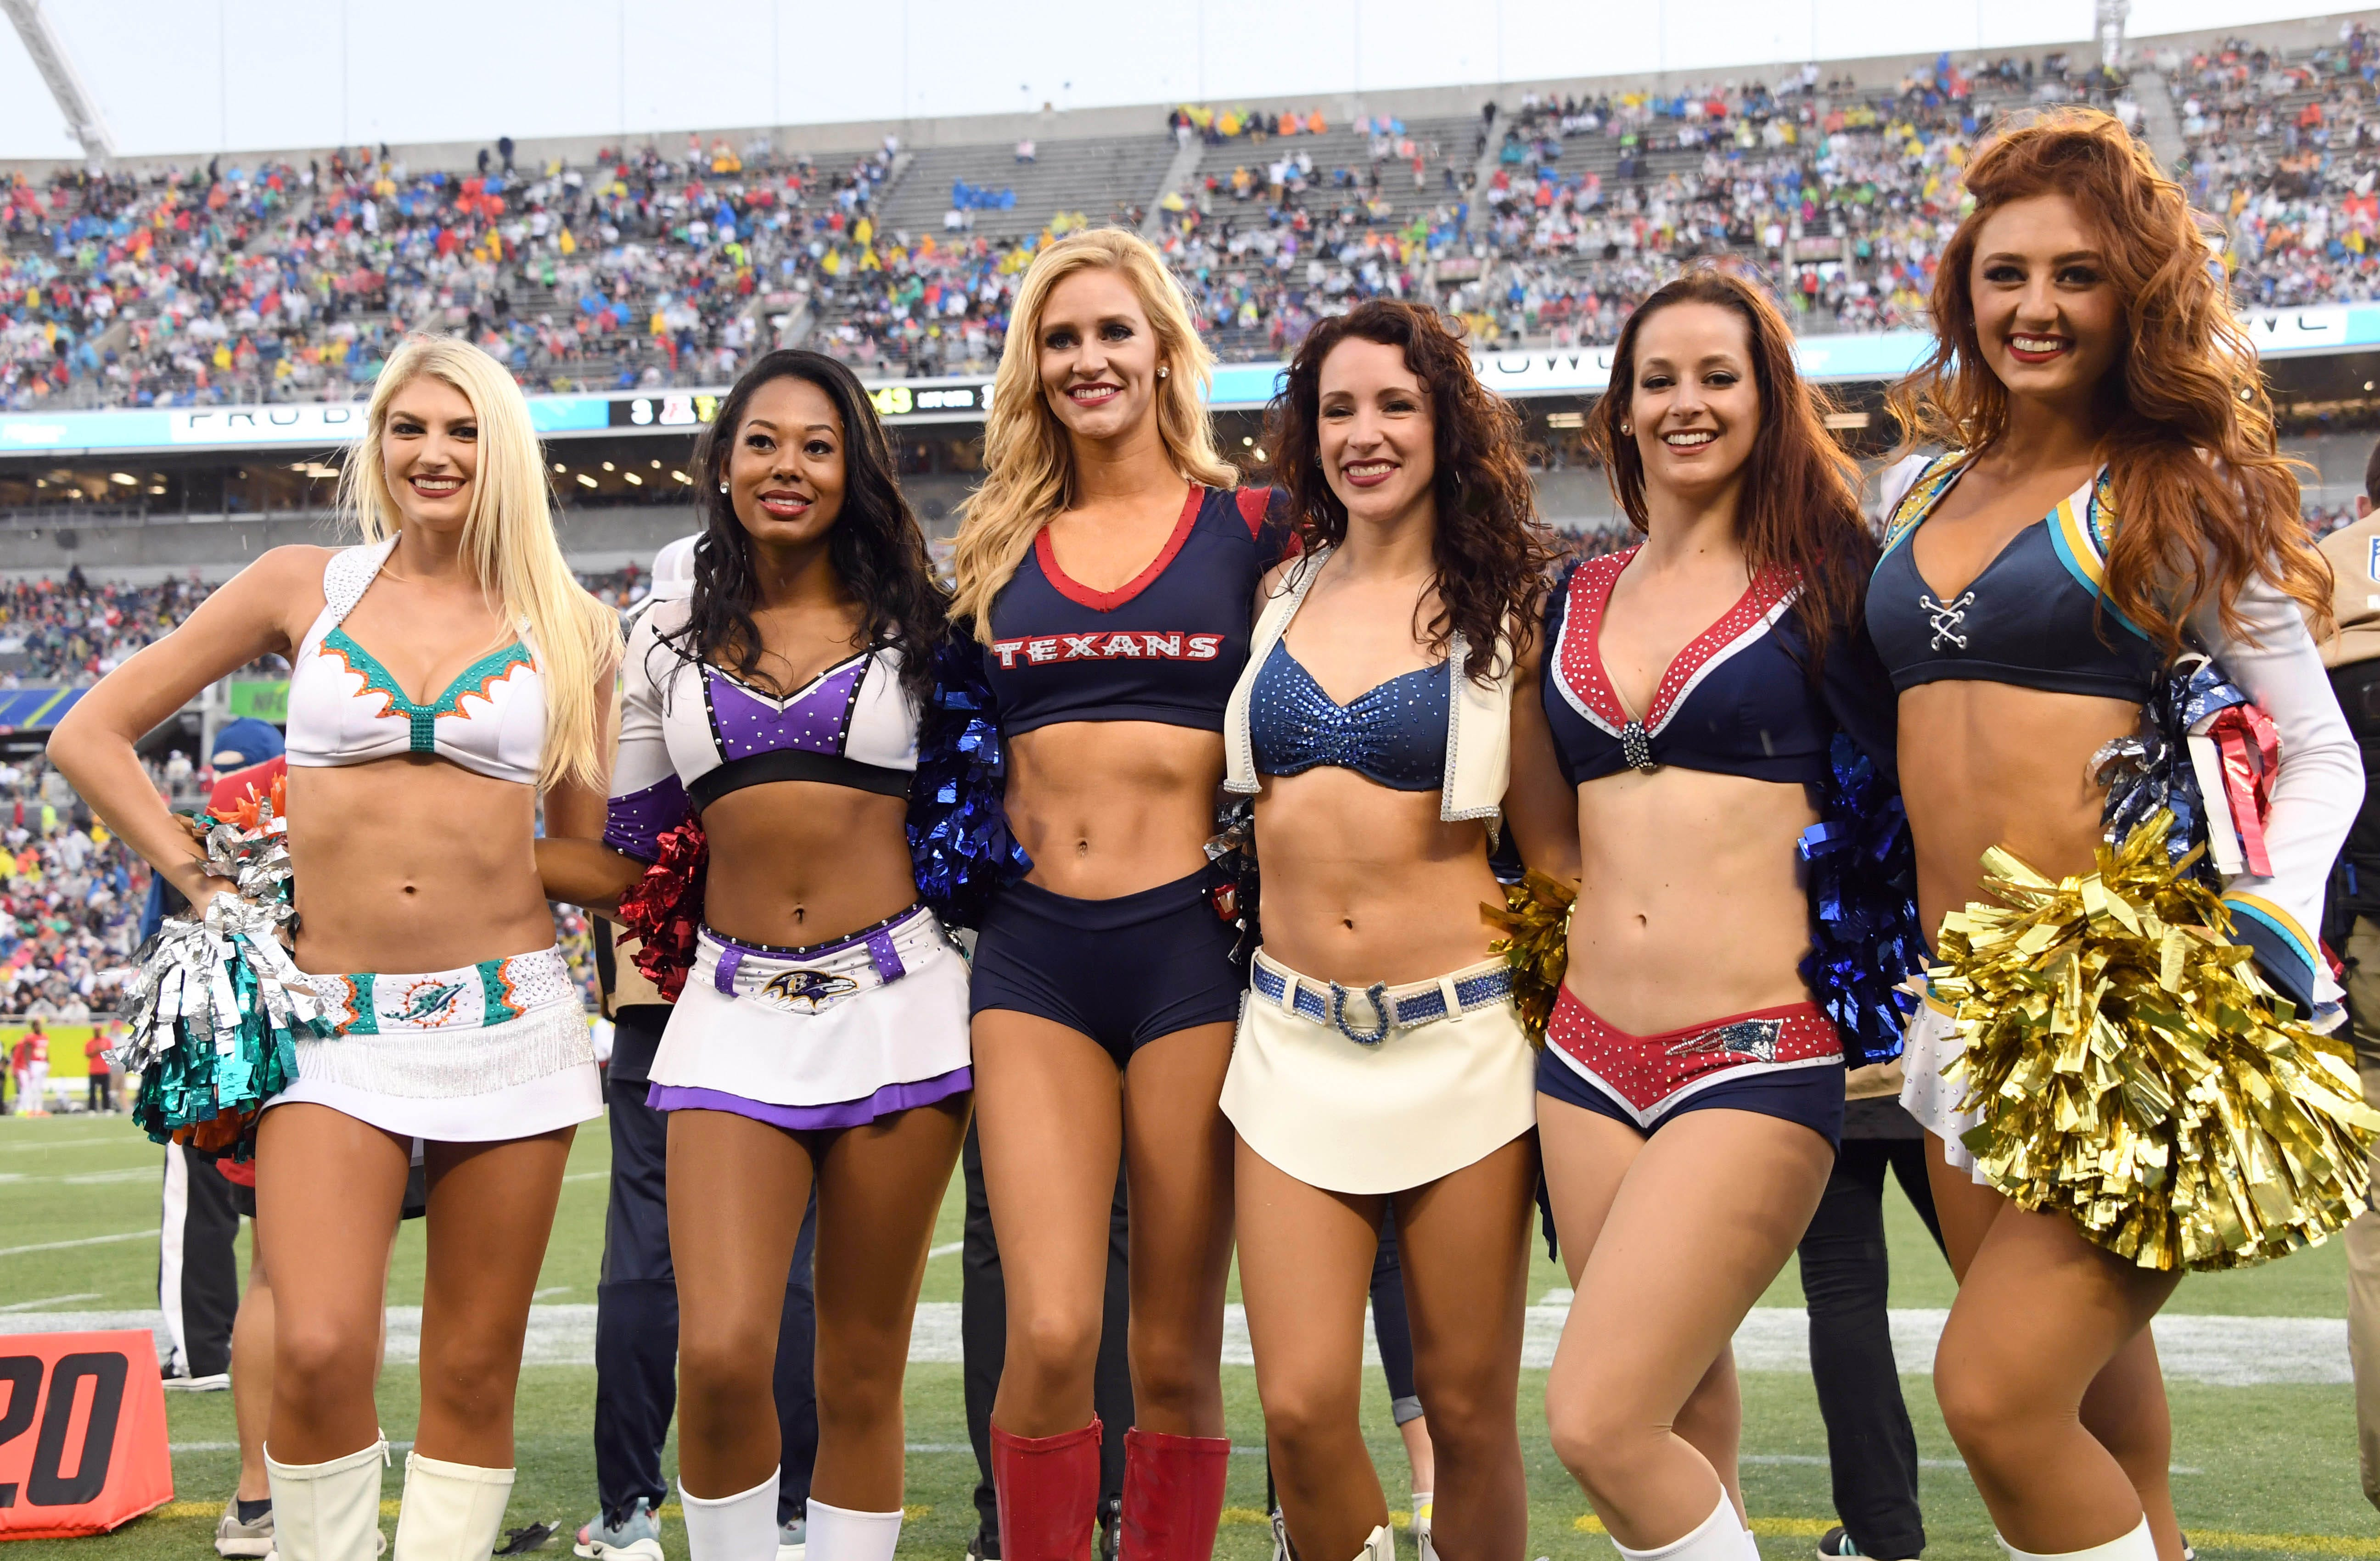 No place in the NFL for cheerleaders in 2018